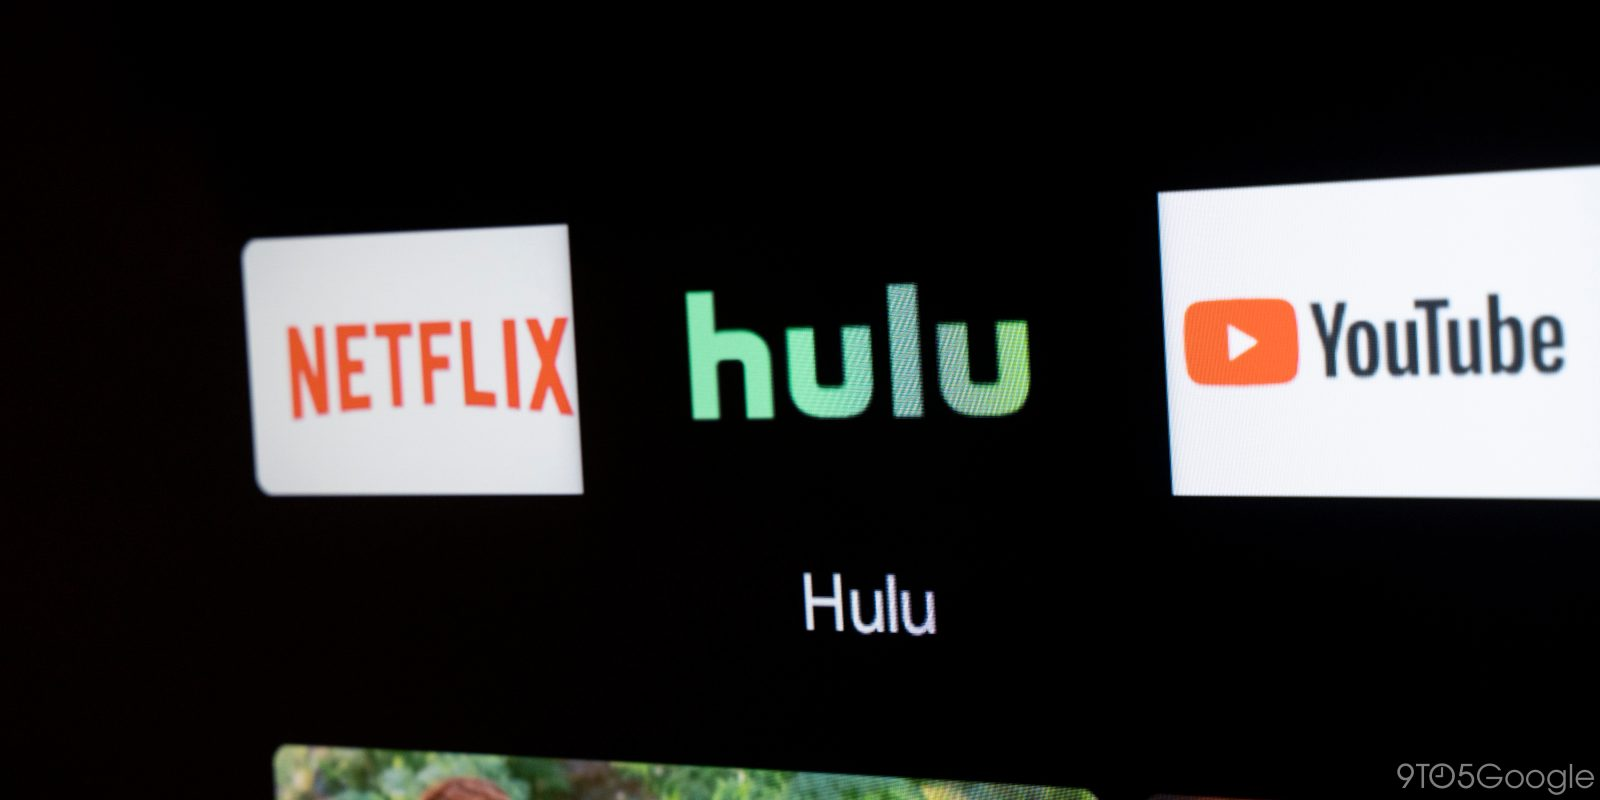 Hulu is strangely pulling support for some Android TV set-top boxes